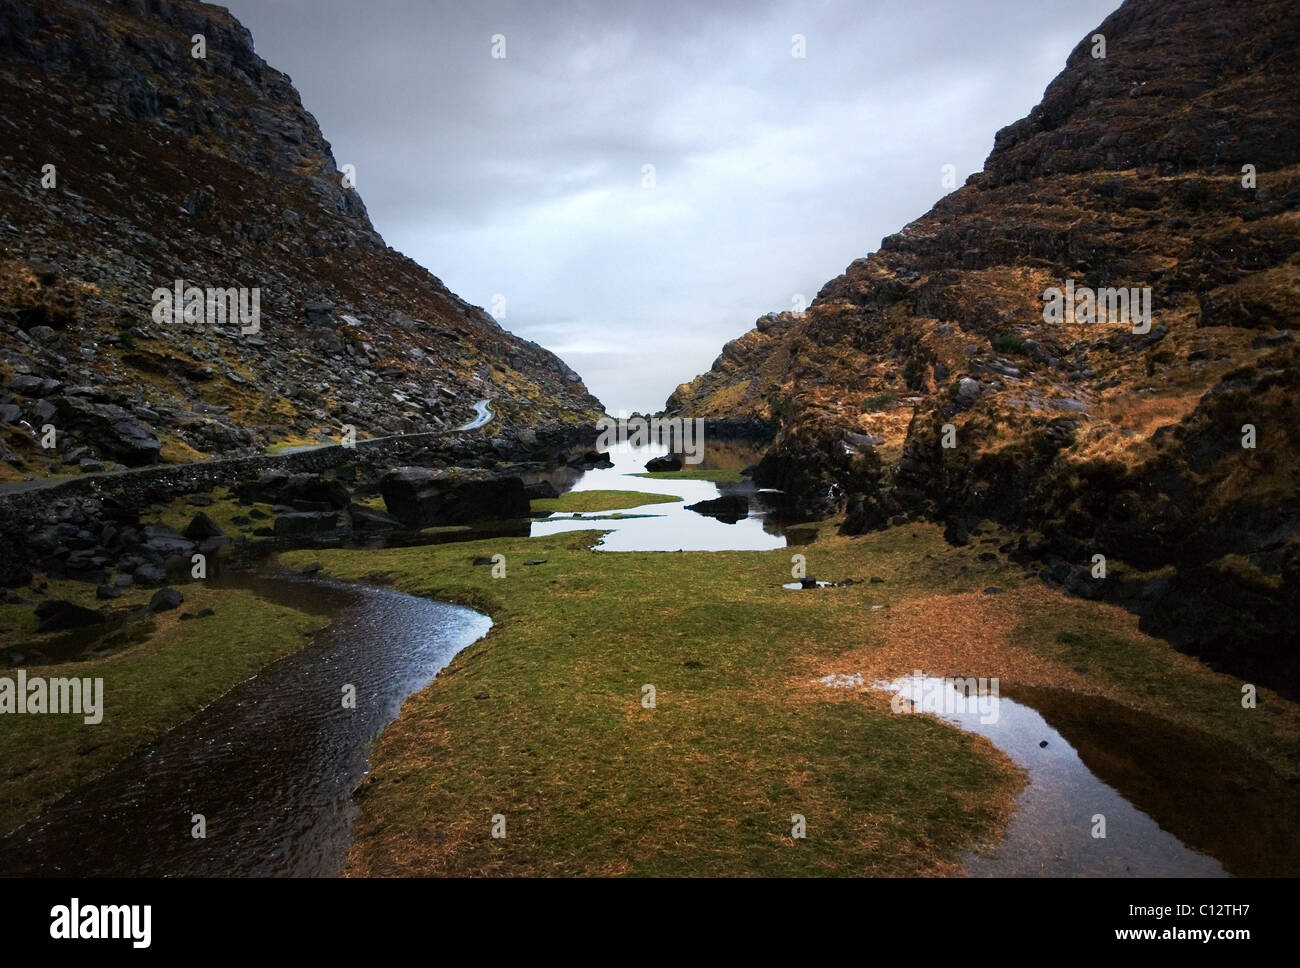 Gap of Dunloe in County Kerry, Eire - Stock Image